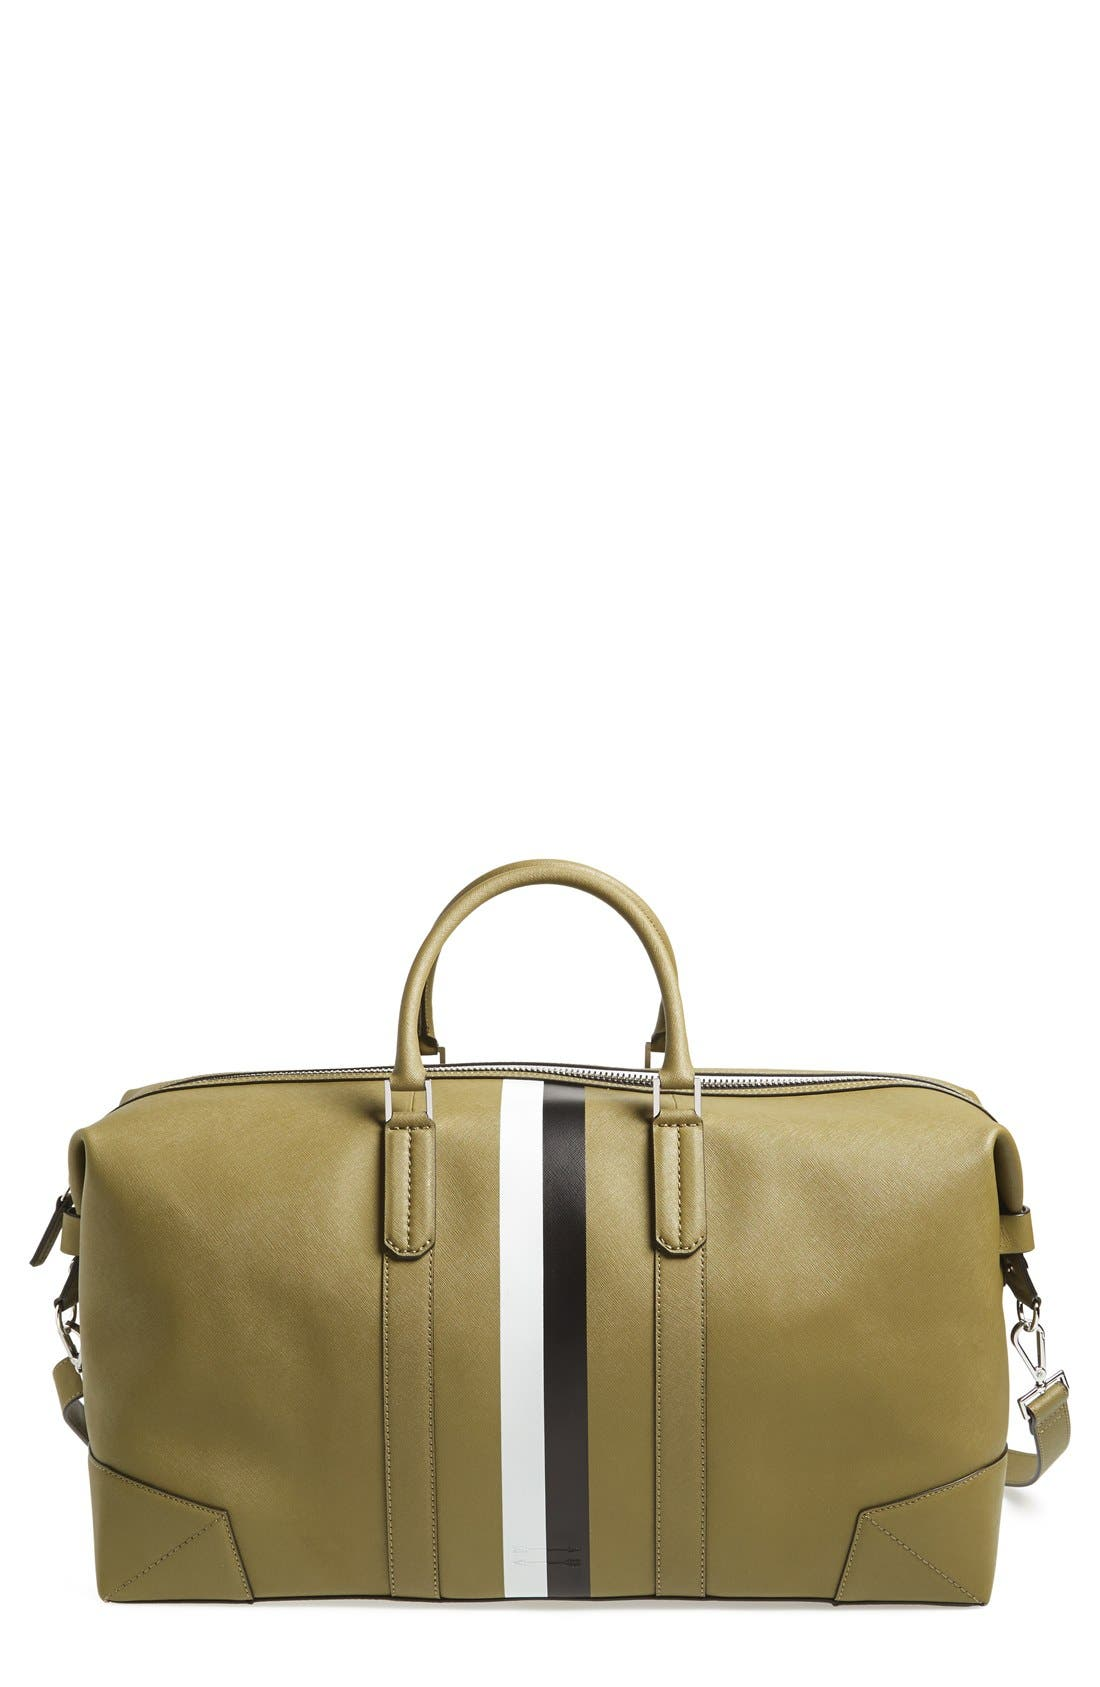 Alternate Image 1 Selected - Ben Minkoff 'Wythe' Weekend Size Saffiano Leather Duffel Bag